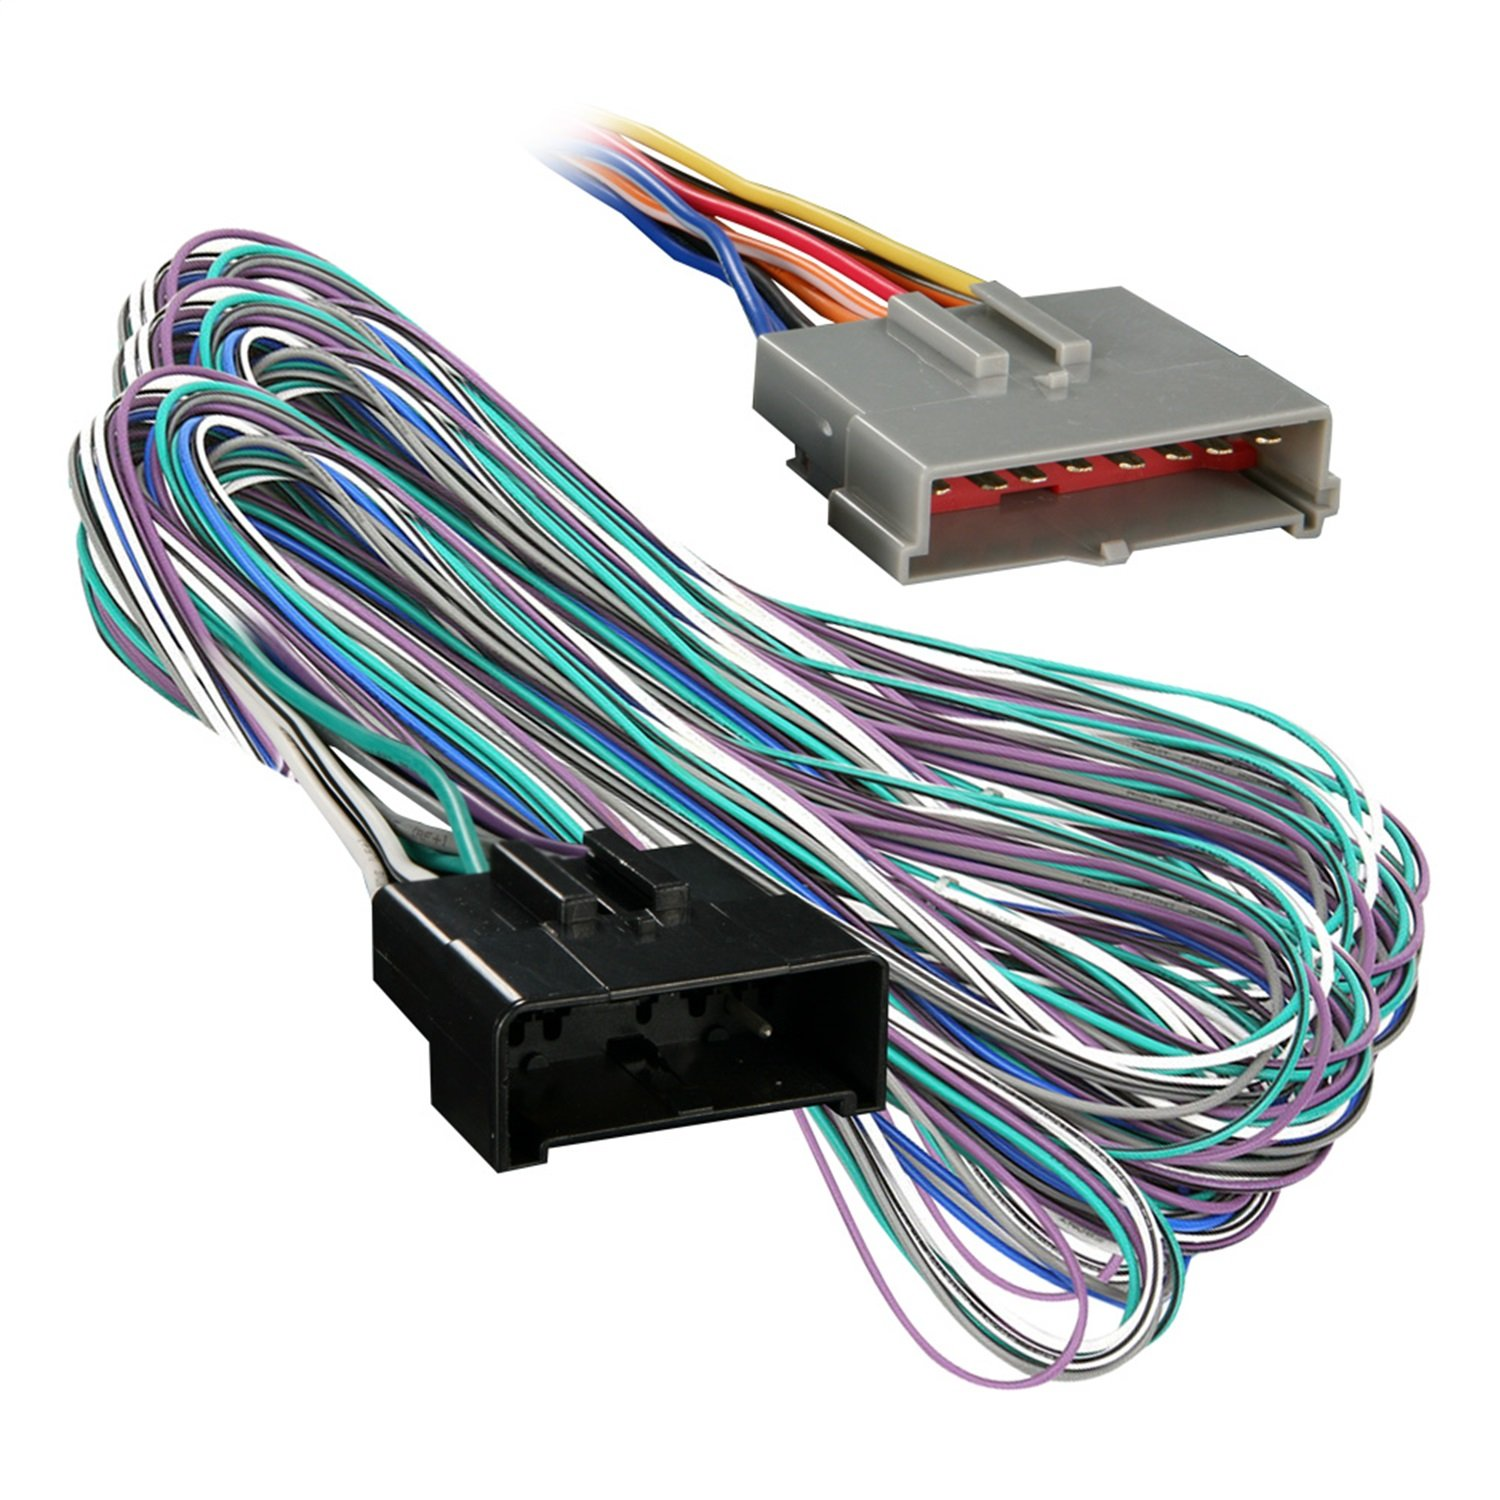 Amazon.com: Metra 70-5602 Premiem System Harness for Ford 94-97: Cell  Phones & Accessories